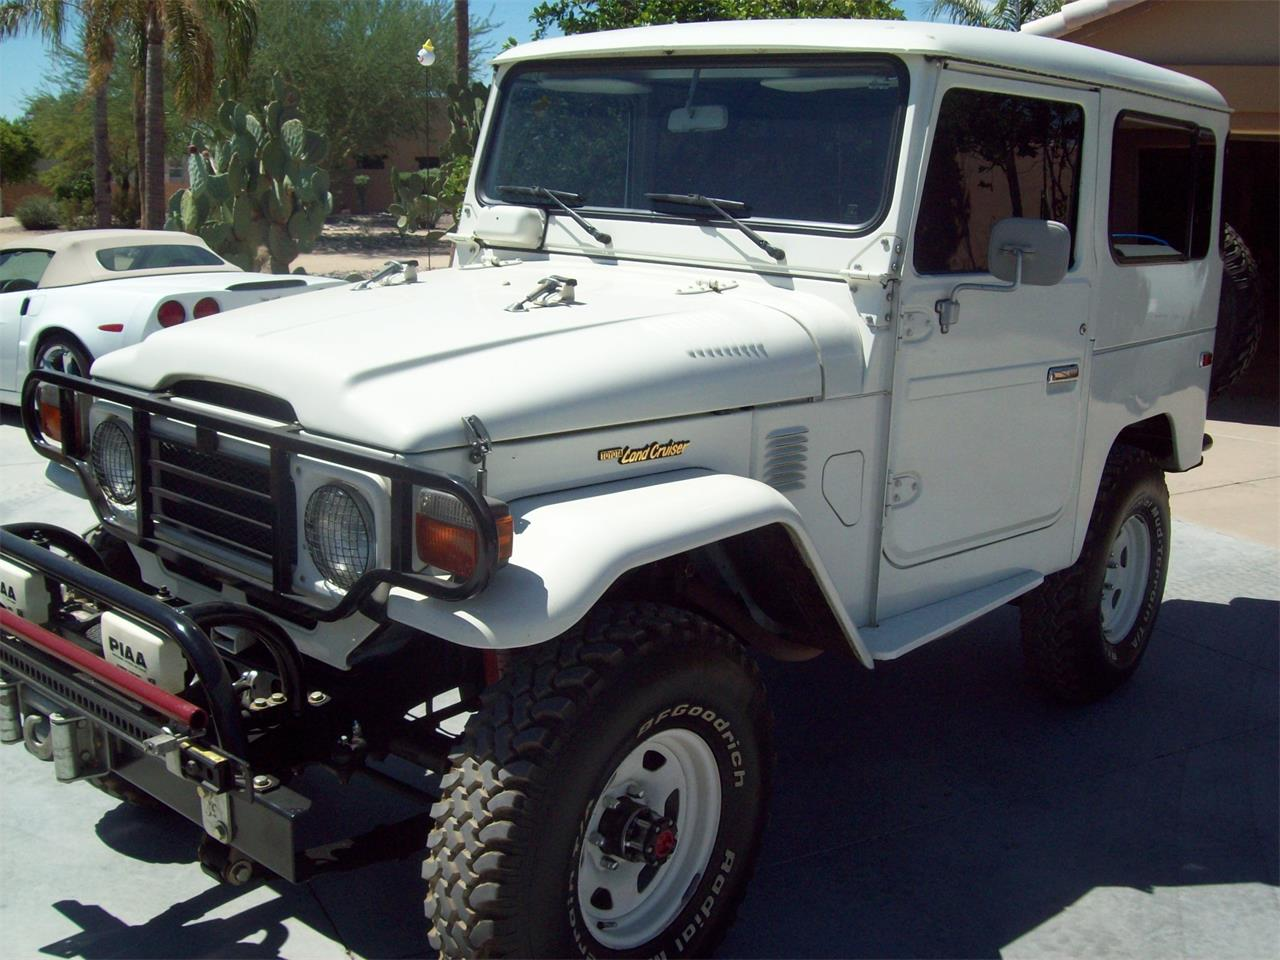 Toyota Fj40 For Sale >> For Sale 1983 Toyota Land Cruiser Fj40 In Peoria Arizona